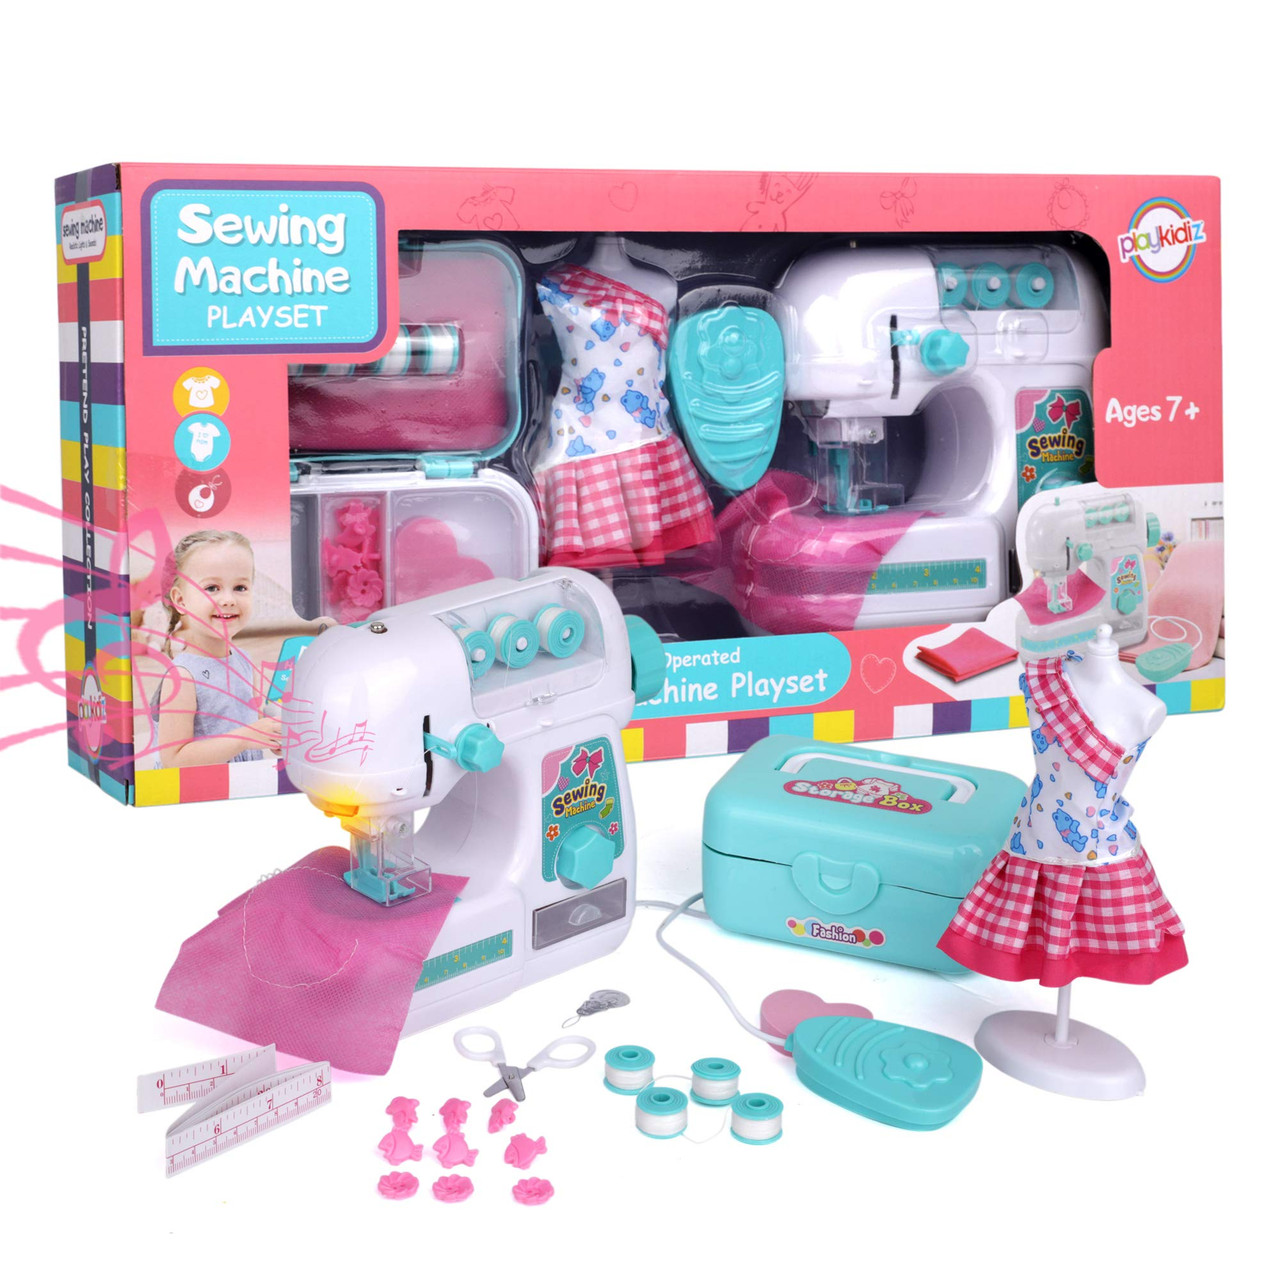 Recommended for Ages 7+ Playkidz Sewing Machine Play Set with Needle Guard Educational Toy Fashion Set with Mannequin and Storage Box